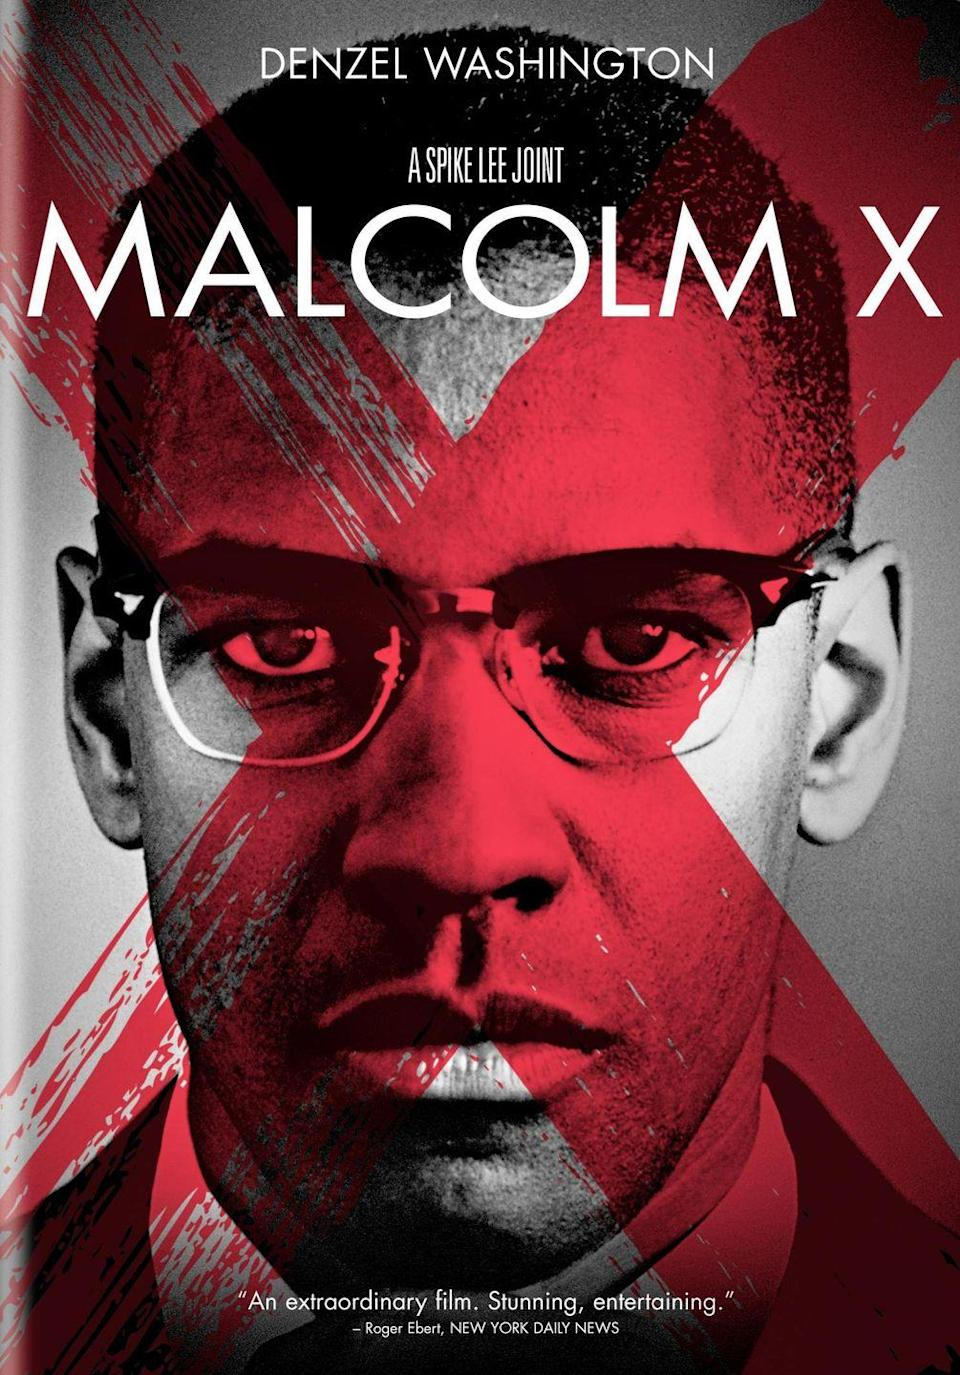 """<p><a class=""""link rapid-noclick-resp"""" href=""""https://www.amazon.com/Malcolm-X-Denzel-Washington/dp/B000QFQE4U?tag=syn-yahoo-20&ascsubtag=%5Bartid%7C10063.g.35405329%5Bsrc%7Cyahoo-us"""" rel=""""nofollow noopener"""" target=""""_blank"""" data-ylk=""""slk:STREAM NOW"""">STREAM NOW</a></p><p>This biographical drama traces the life of Muslim minister and civil rights activist Malcom X, including his troubled childhood, his incarceration, his conversion to Islam, and his eventual exile from the Nation of Islam, all leading up to his 1965 assassination. </p><p>__________________________________________________________</p><p> <a href=""""https://subscribe.hearstmags.com/subscribe/womansday/253396?source=wdy_edit_article"""" rel=""""nofollow noopener"""" target=""""_blank"""" data-ylk=""""slk:Subscribe to Woman's Day"""" class=""""link rapid-noclick-resp"""">Subscribe to Woman's Day</a> today and get <strong>73% off your first 12 issues</strong>. And while you're at it, <a href=""""https://subscribe.hearstmags.com/circulation/shared/email/newsletters/signup/wdy-su01.html"""" rel=""""nofollow noopener"""" target=""""_blank"""" data-ylk=""""slk:sign up for our FREE newsletter"""" class=""""link rapid-noclick-resp"""">sign up for our FREE newsletter</a> for even more of the Woman's Day content you want.</p>"""